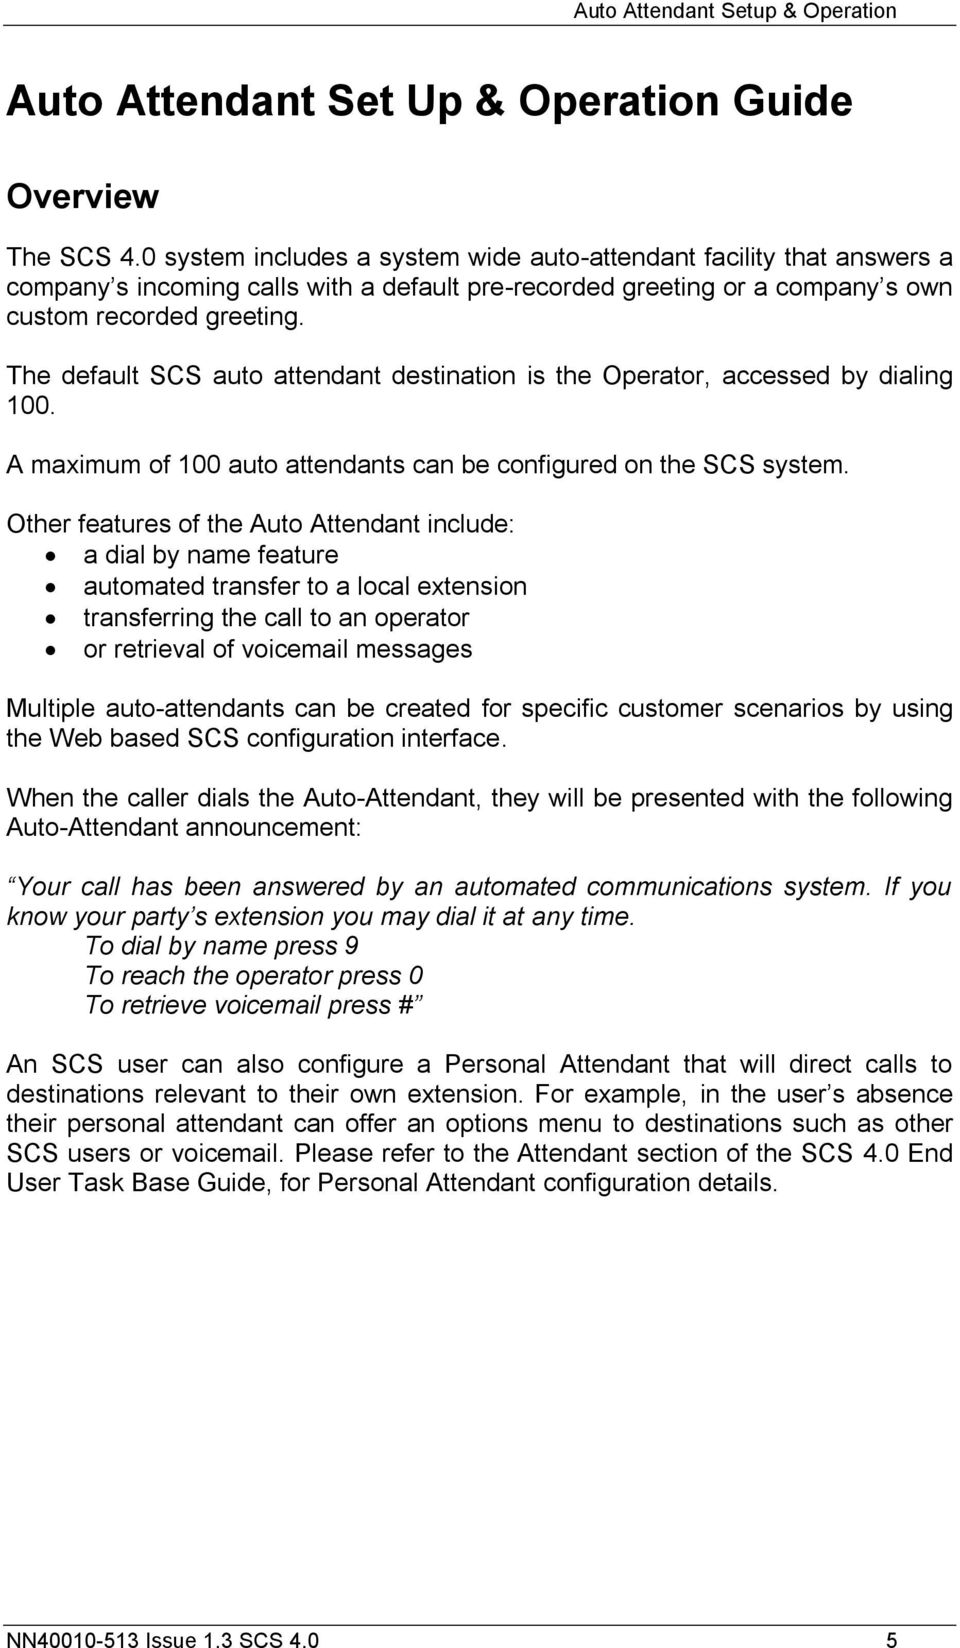 The default SCS auto attendant destination is the Operator, accessed by dialing 100. A maximum of 100 auto attendants can be configured on the SCS system.